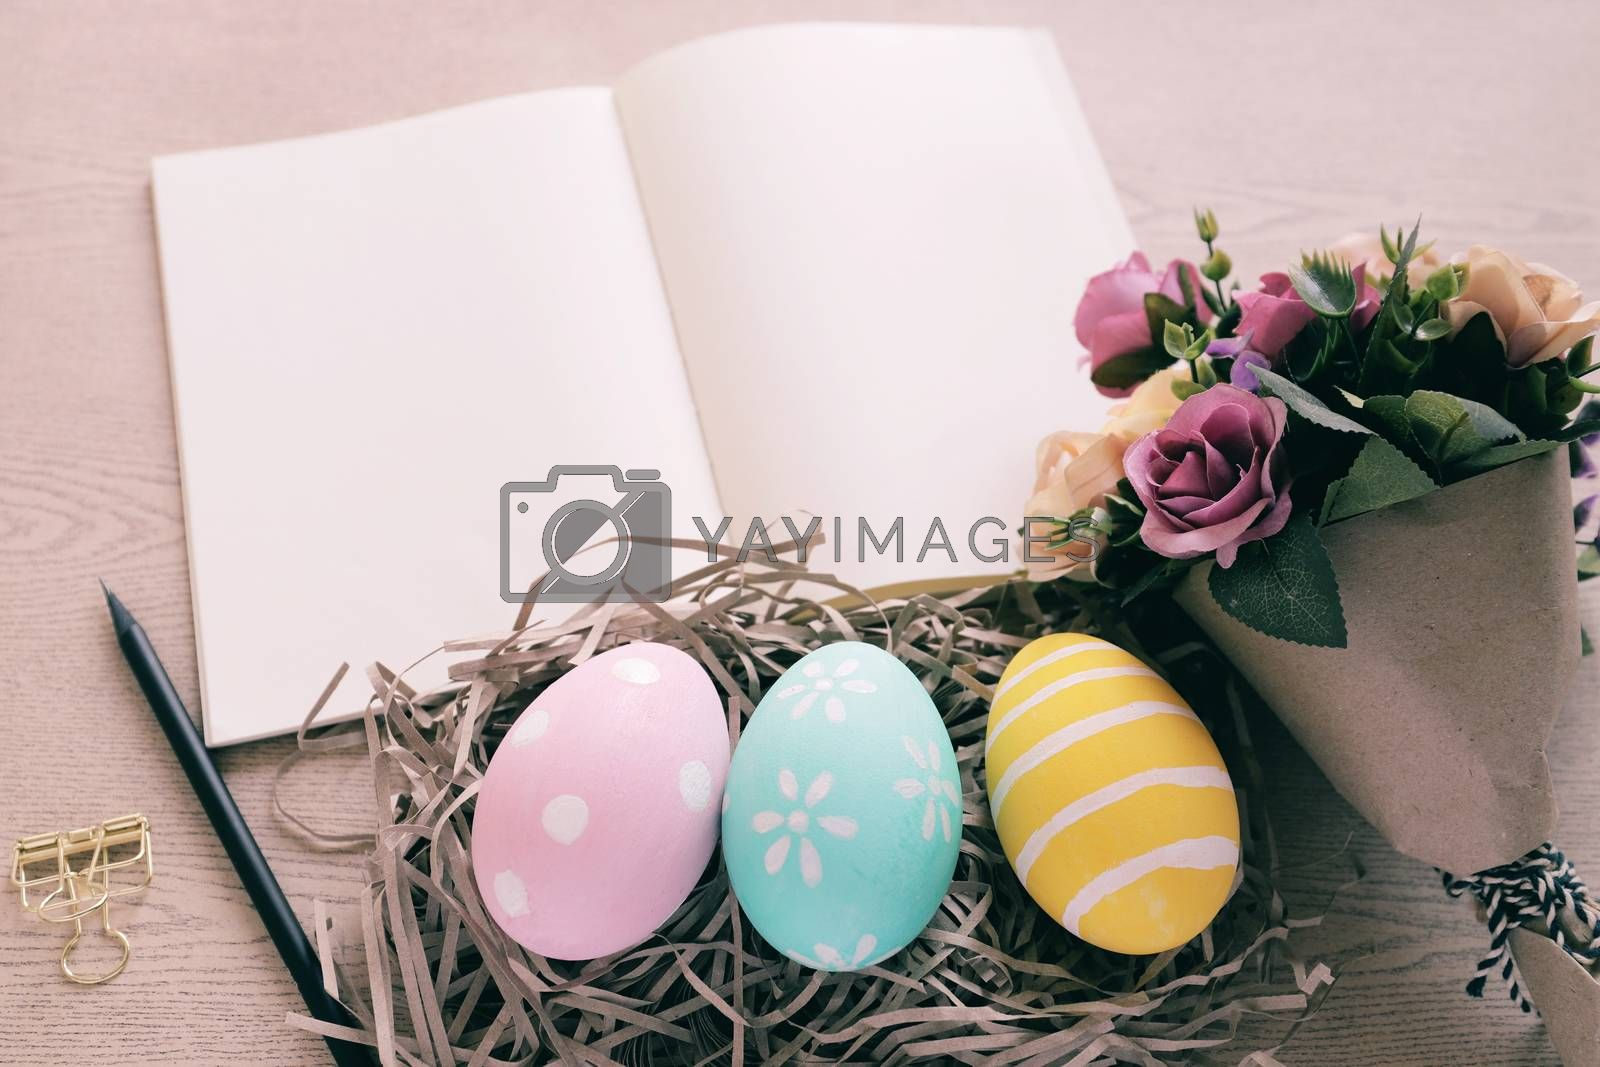 Royalty free image of Pastel and colorful easter eggs in nest and bouquet of flower wi by nuchylee